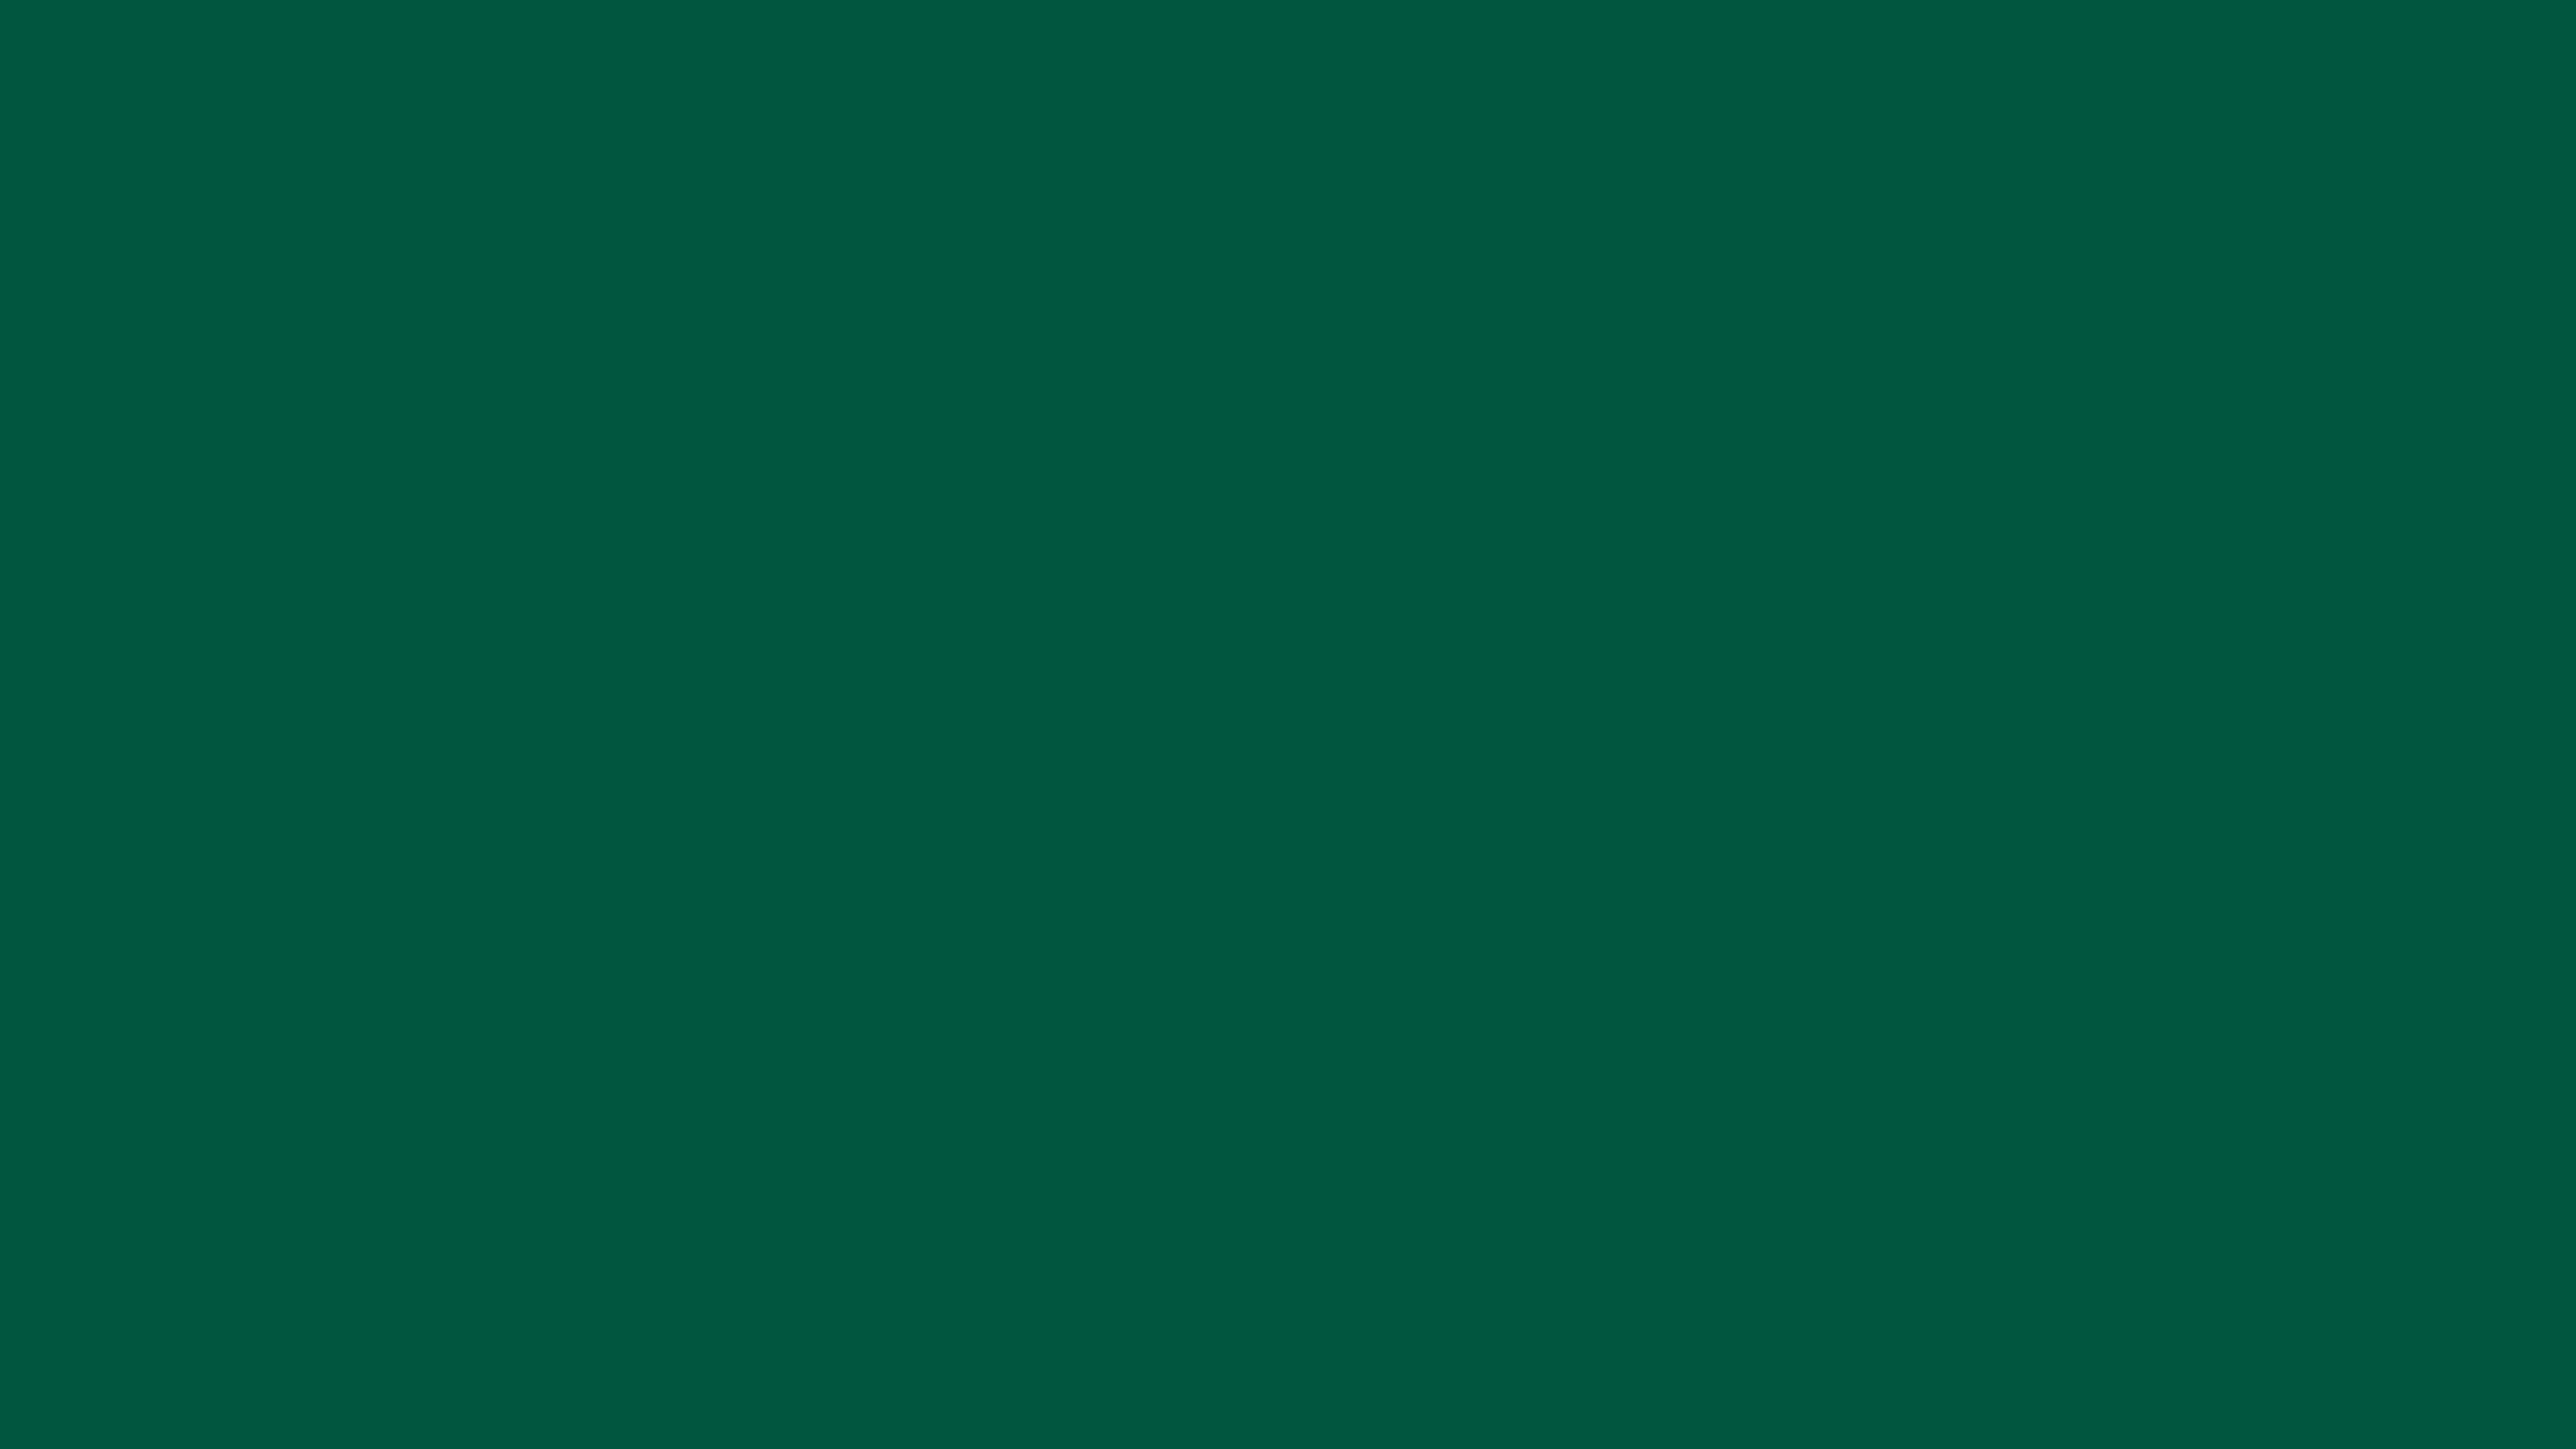 3840x2160 Sacramento State Green Solid Color Background